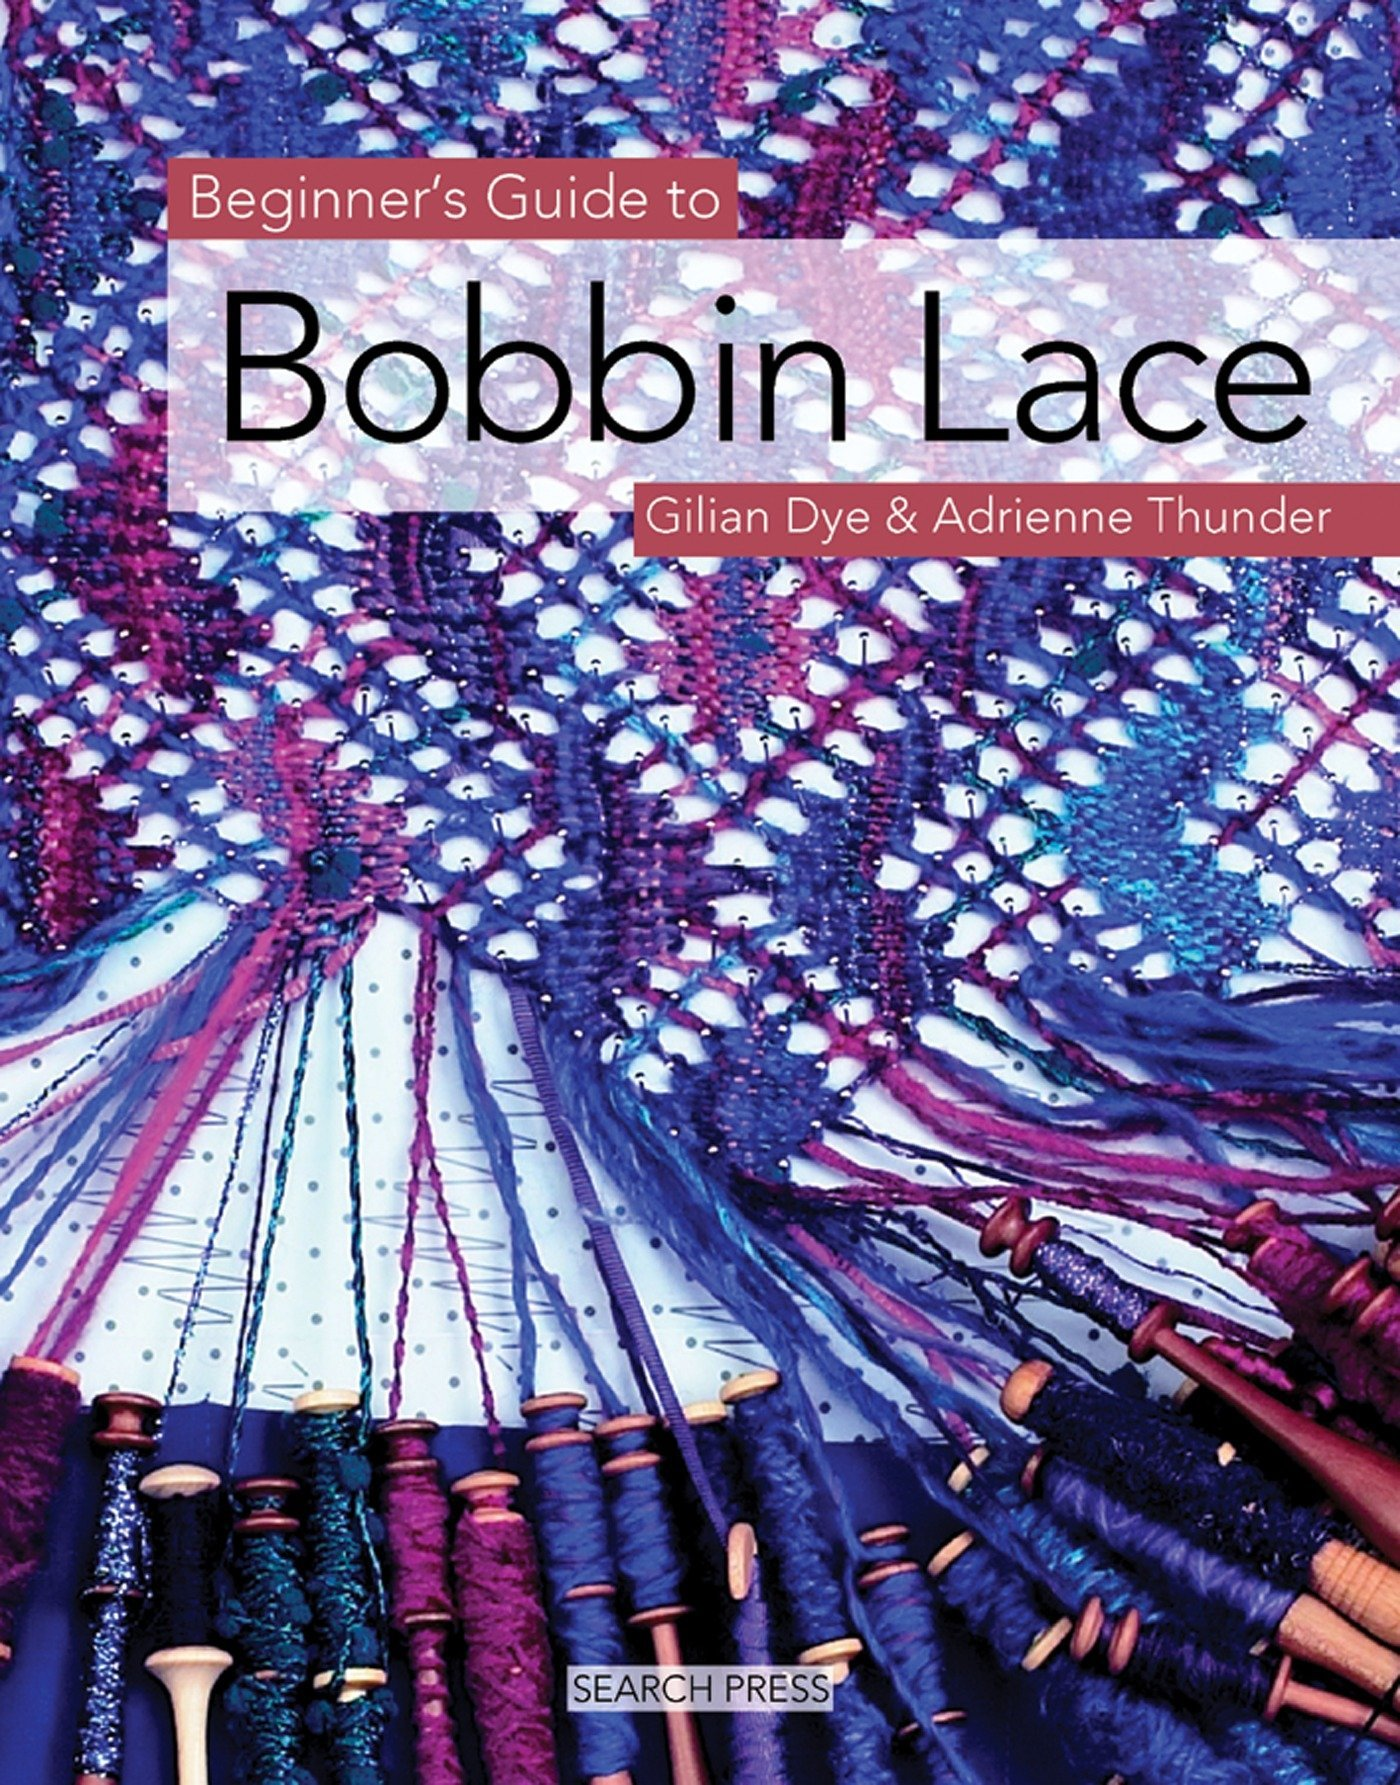 Beginner S Guide To Bobbin Lace Beginner S Guide To Needlecrafts Dye Gilian Thunder Adrienne 8601200745993 Amazon Com Books